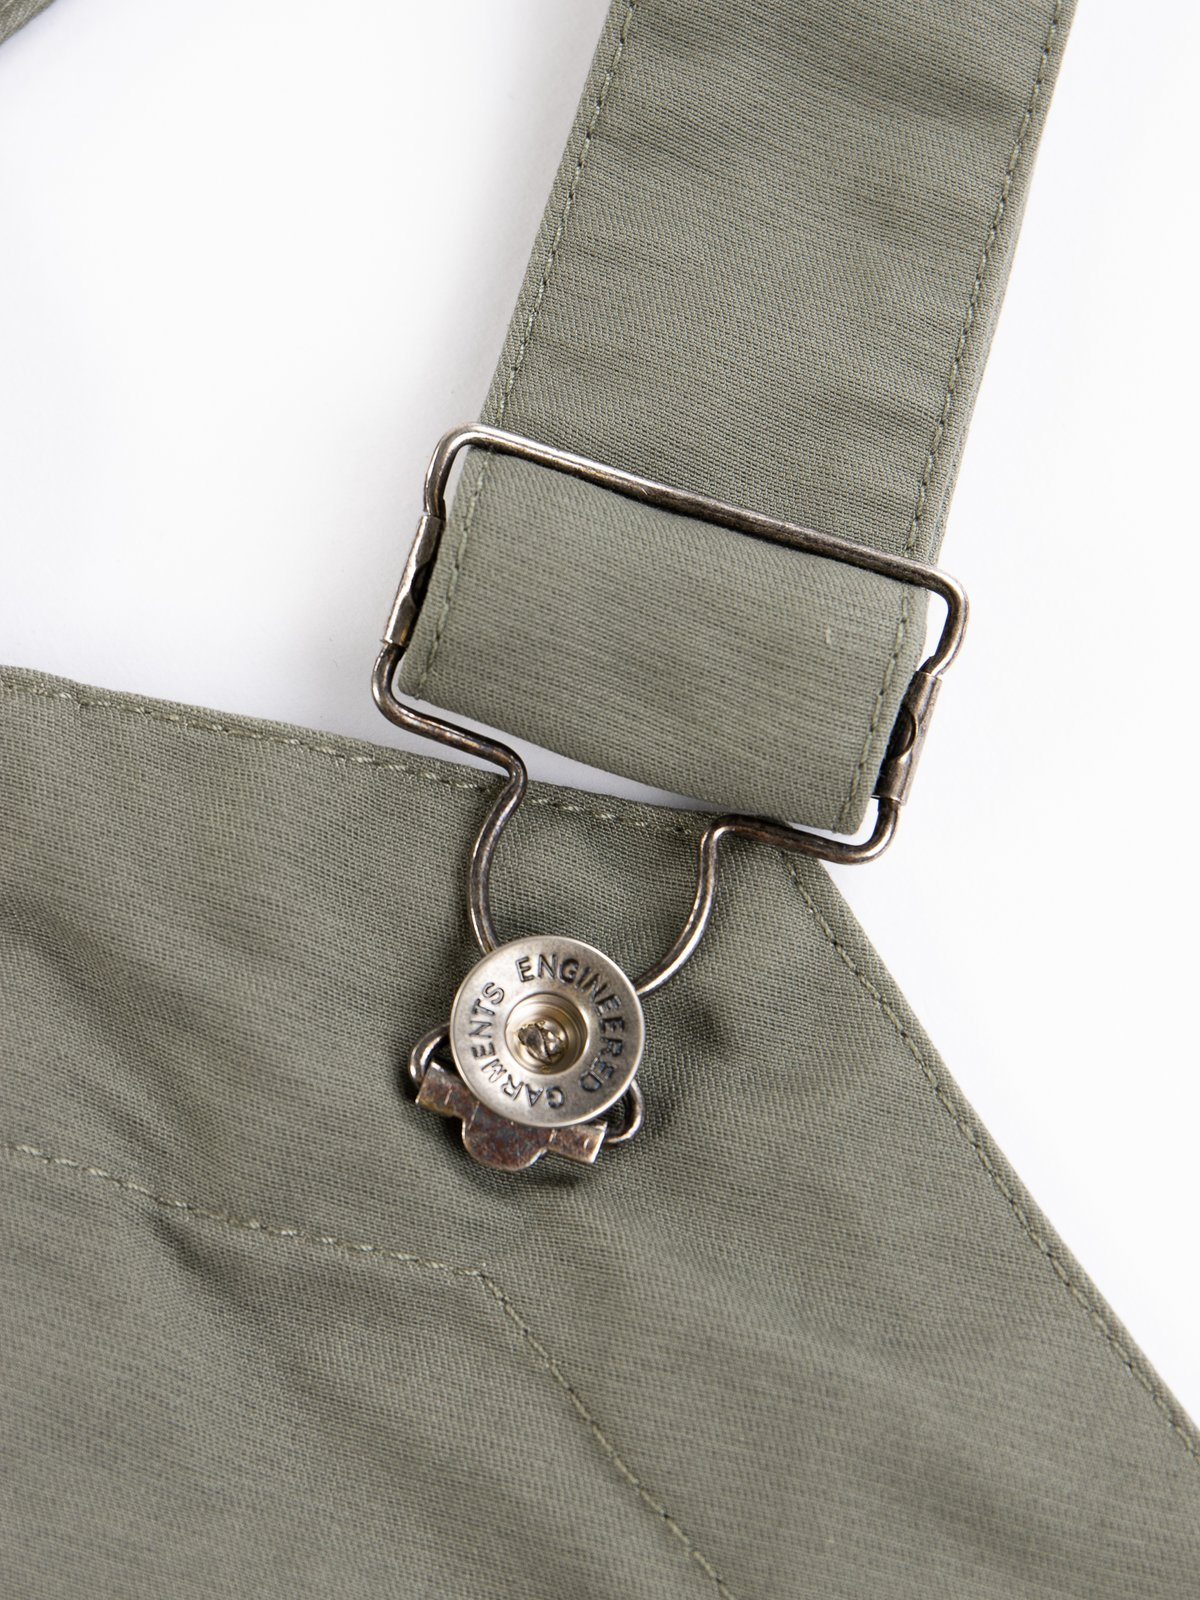 Olive Cotton Double Cloth Overalls - Image 4